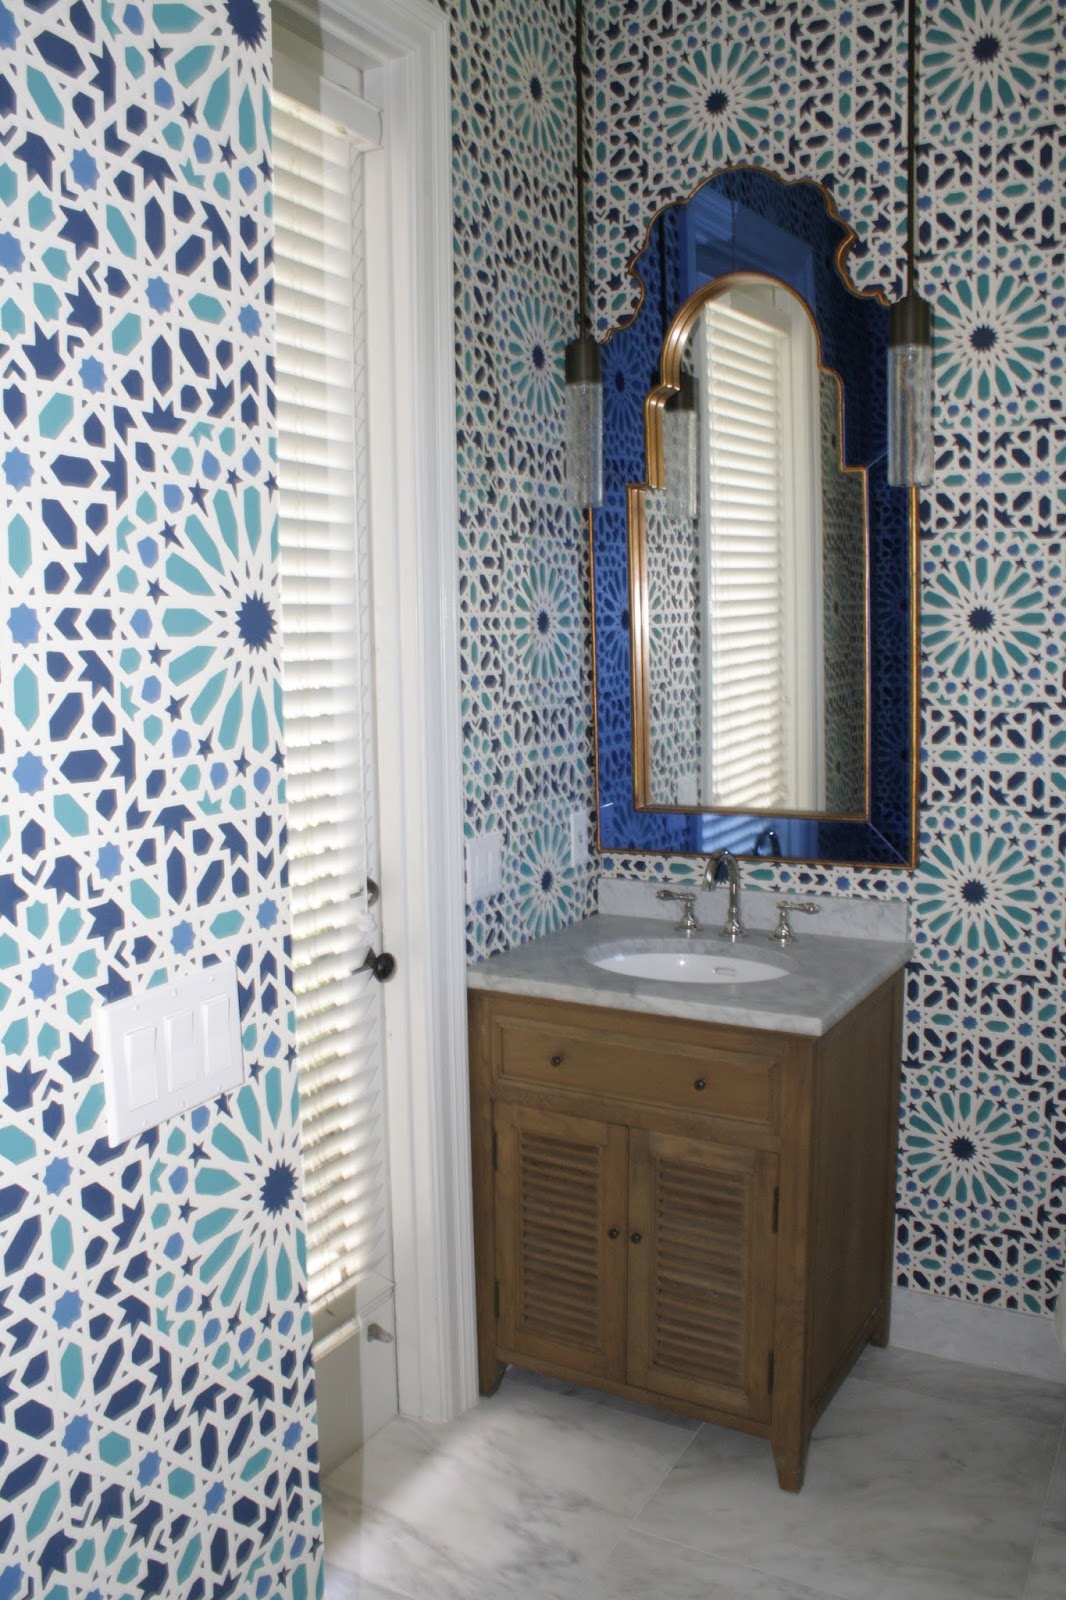 Modern moroccan bathroom - This Might Be The Most Amazing Cabana Bathroom It Is Bursting With Color And Personality We Love The Dramatic Moroccan Inspired Wallpaper The Modern